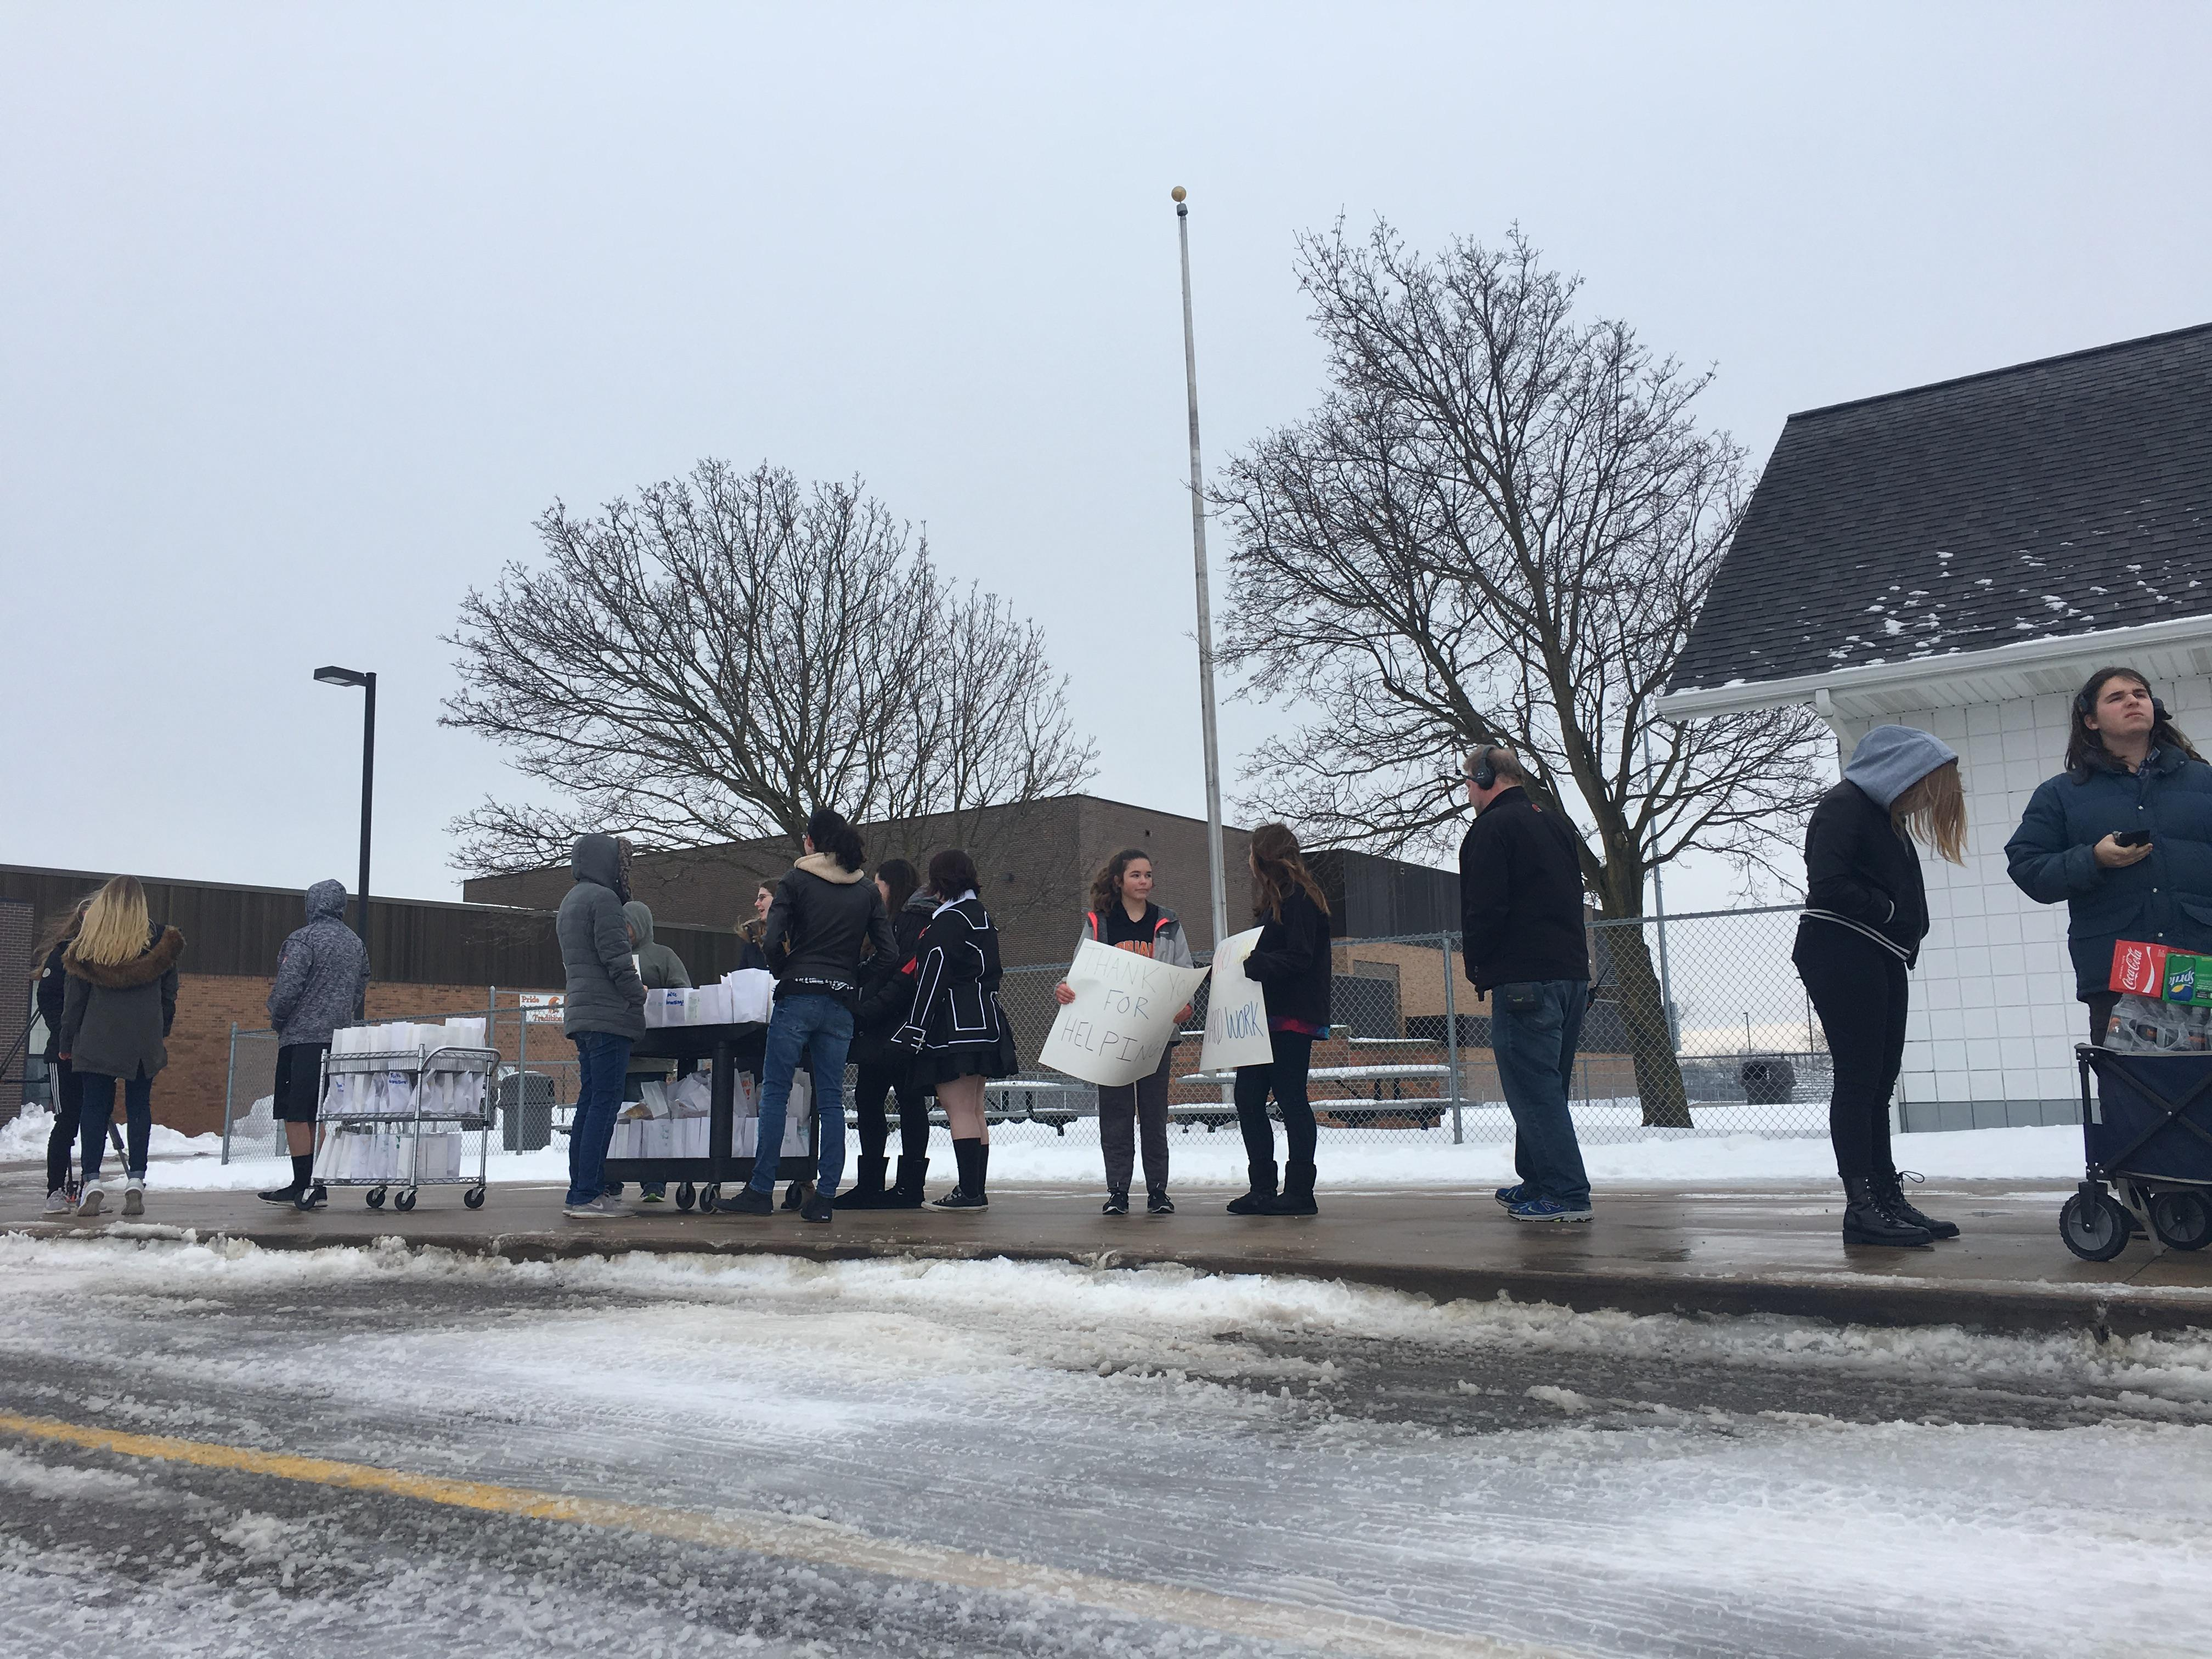 Thornapple Kellogg High school students await with thank you signs as they give treats, beverages and words of encouragement to service workers and first responders. Feb. 14, 2019.{ } (WWMT/Jason Heeres)